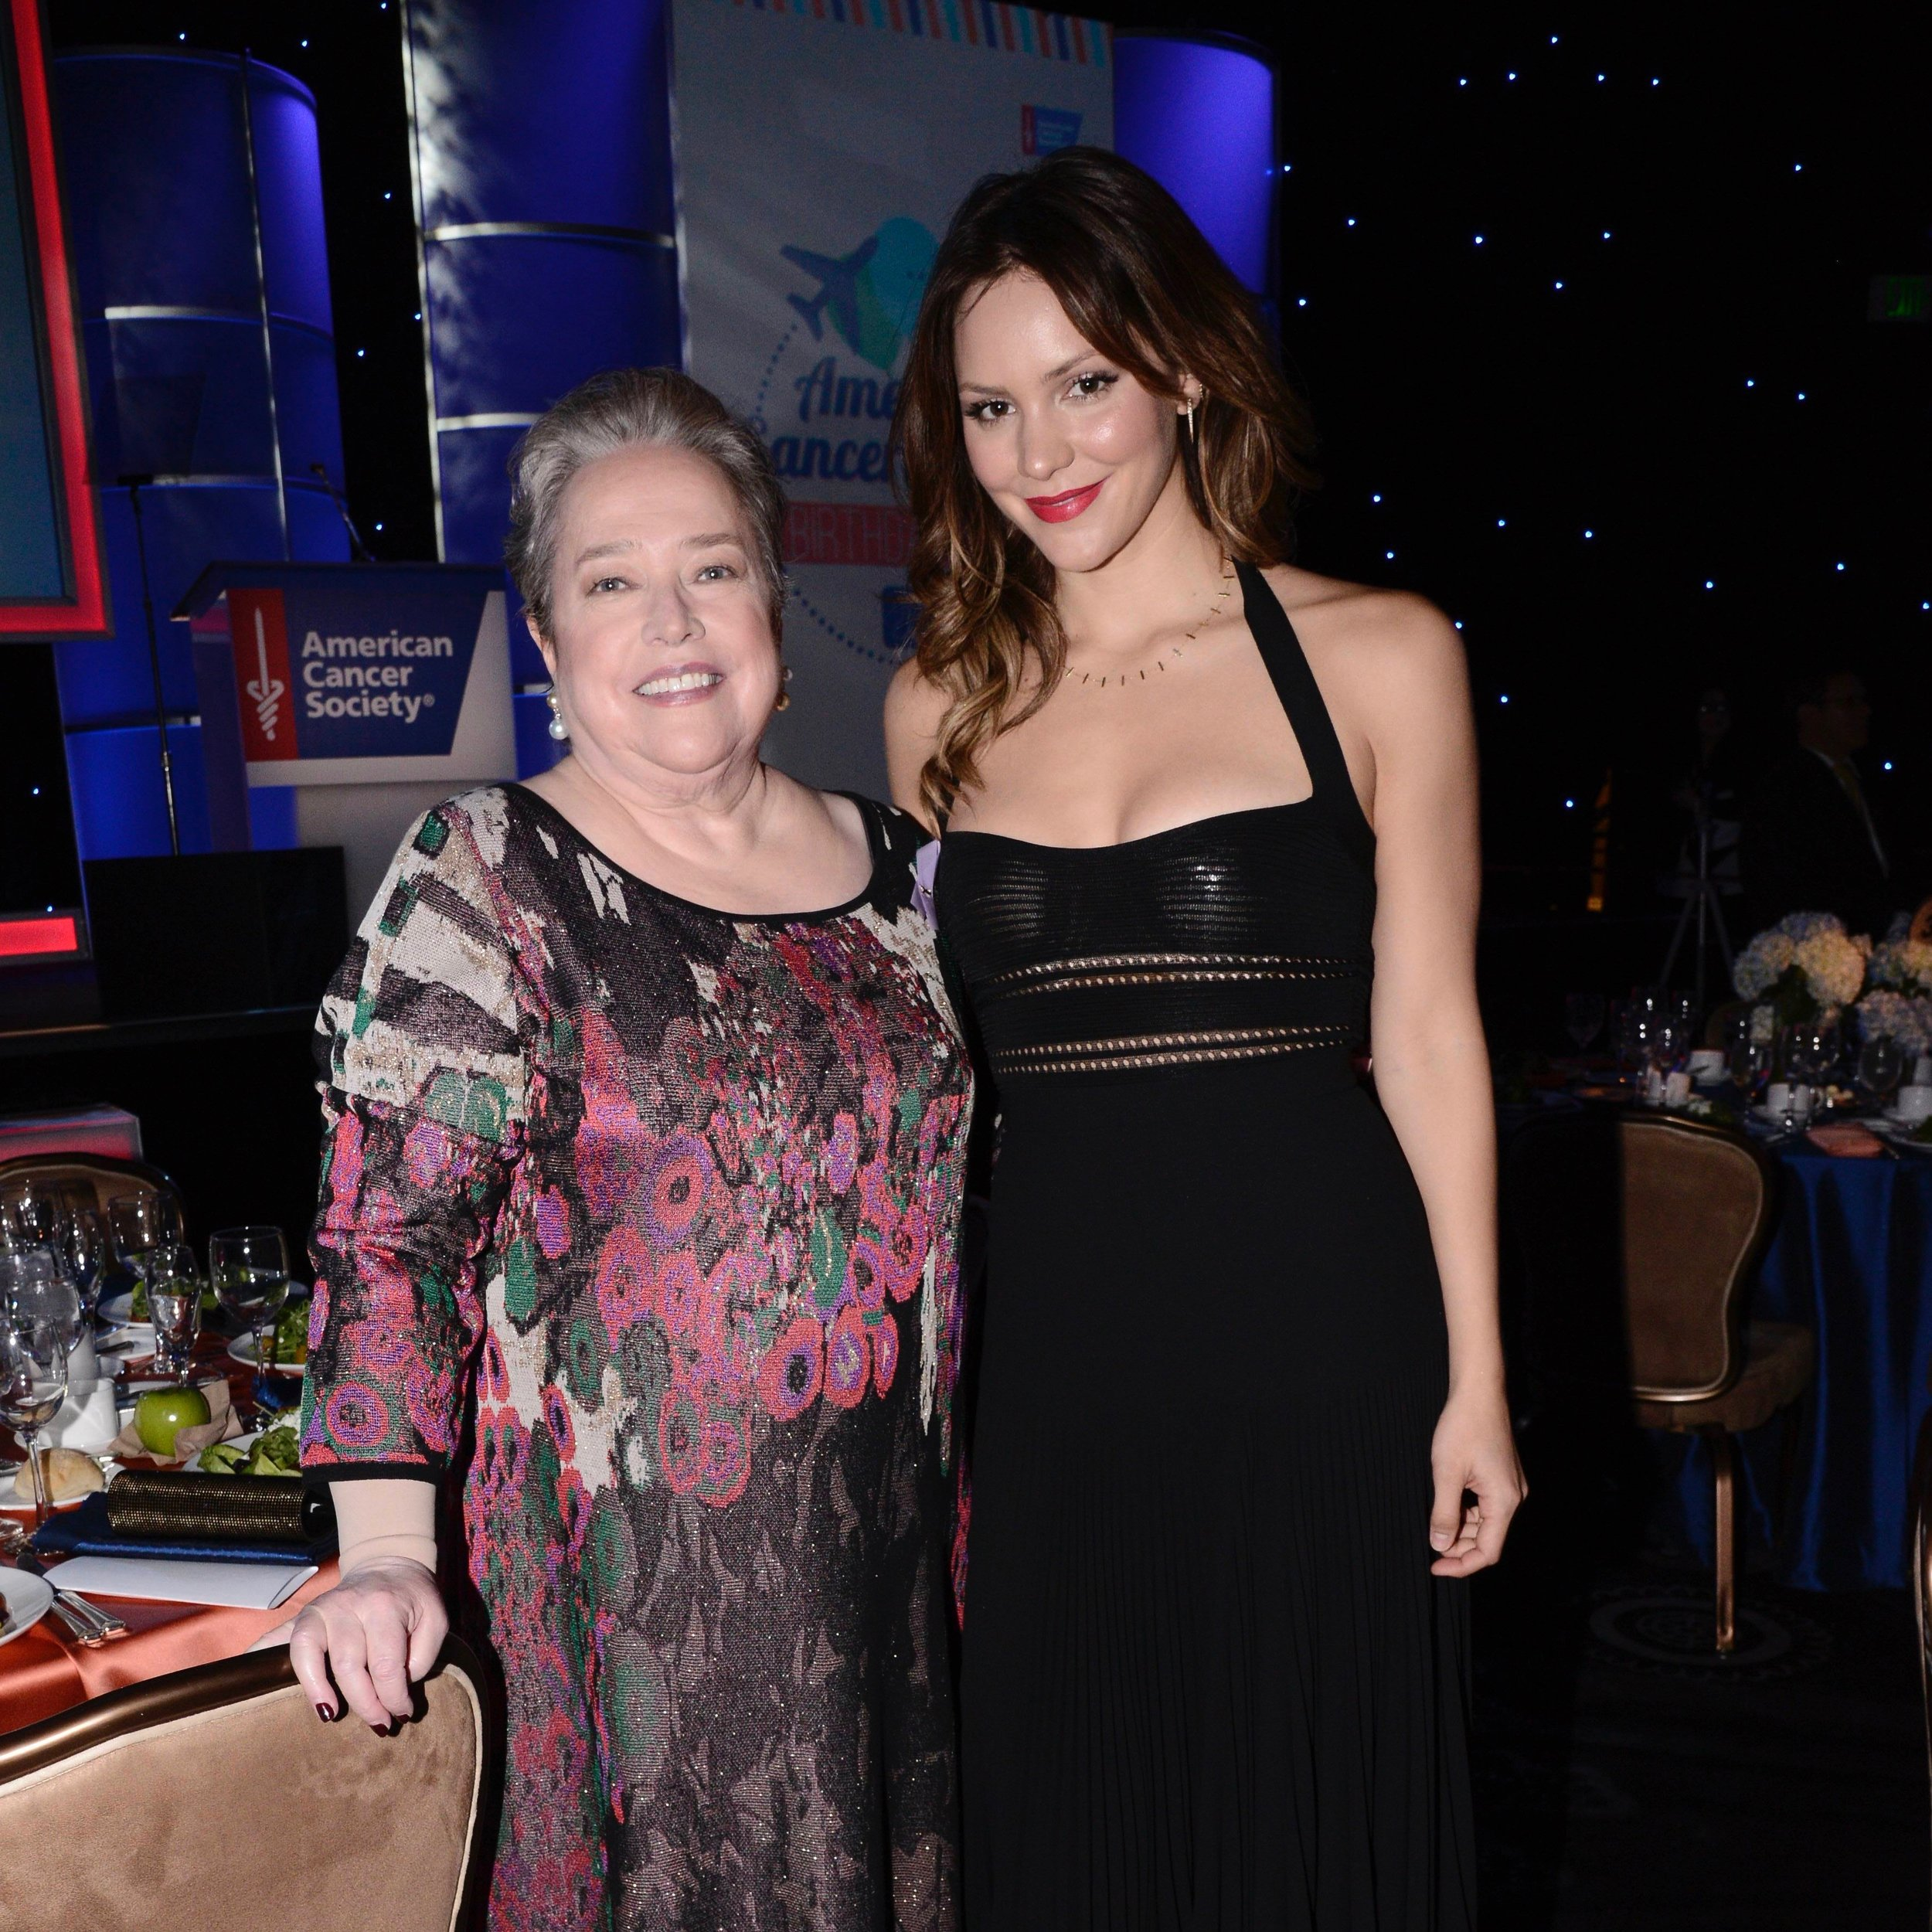 Kathy Bates & Katherine McPhee at Birthday Ball